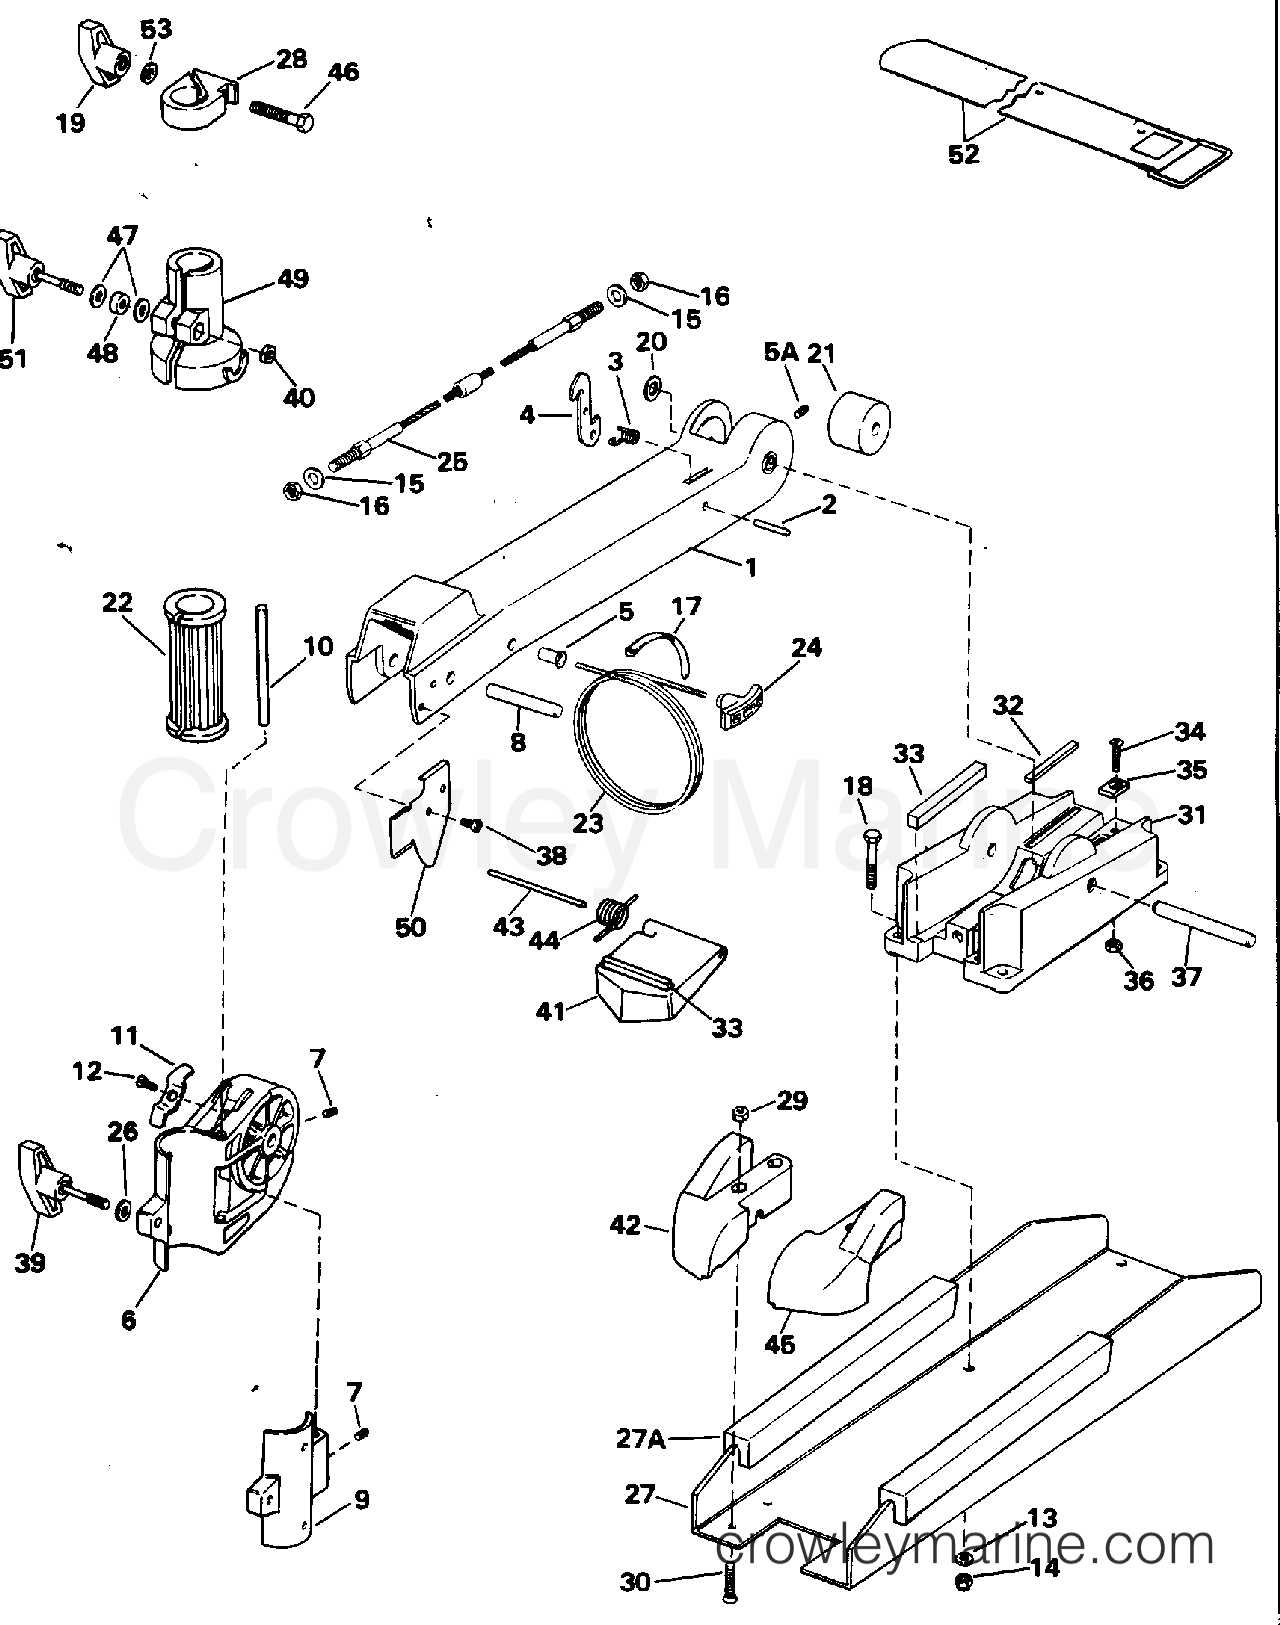 Bow Arm And Deck Bracket Group